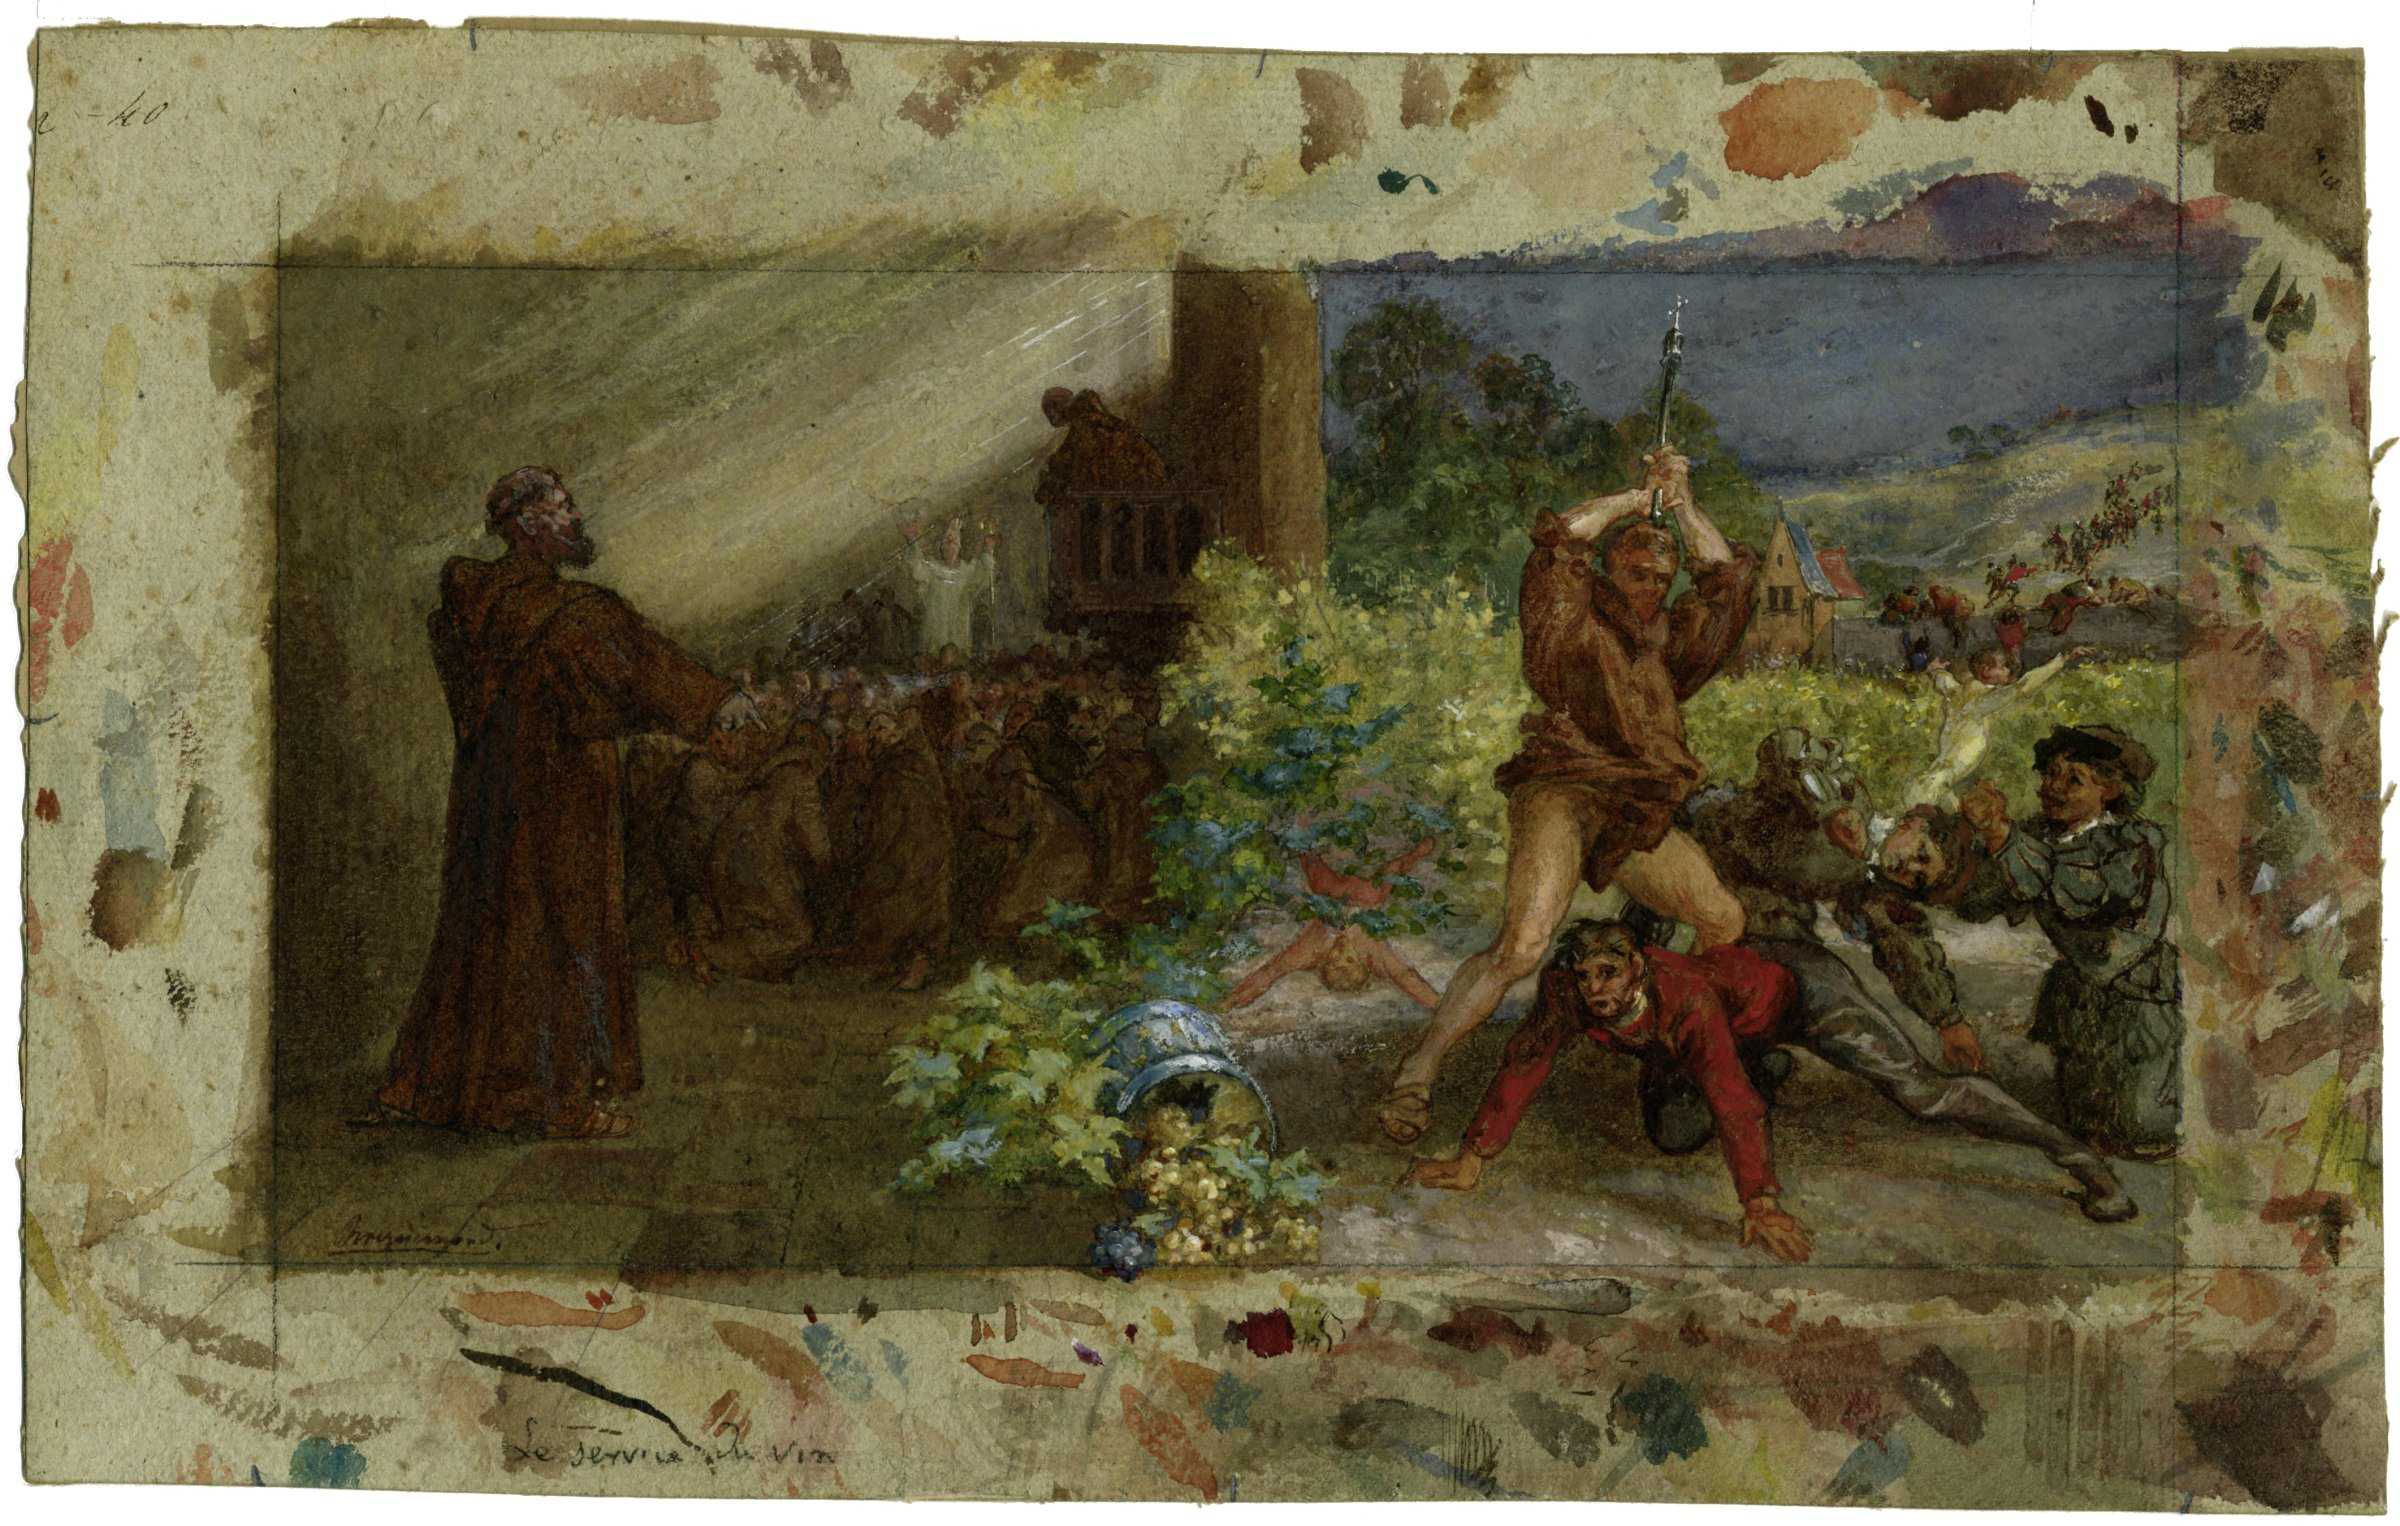 In the middle of the composition a barrel of grapes spills toward the viewer. In the right foreground a brown-robed monk raises a weapon topped with a cross, preparing to strike a male on the ground in front of him. Others have already been struck, and more figures flee into the right background. To the left of the image monks gather to listen to a white-robed bishop holding a crozier. Outside the framing lines of the image, the artist tested colors and brushstrokes in all four margins.